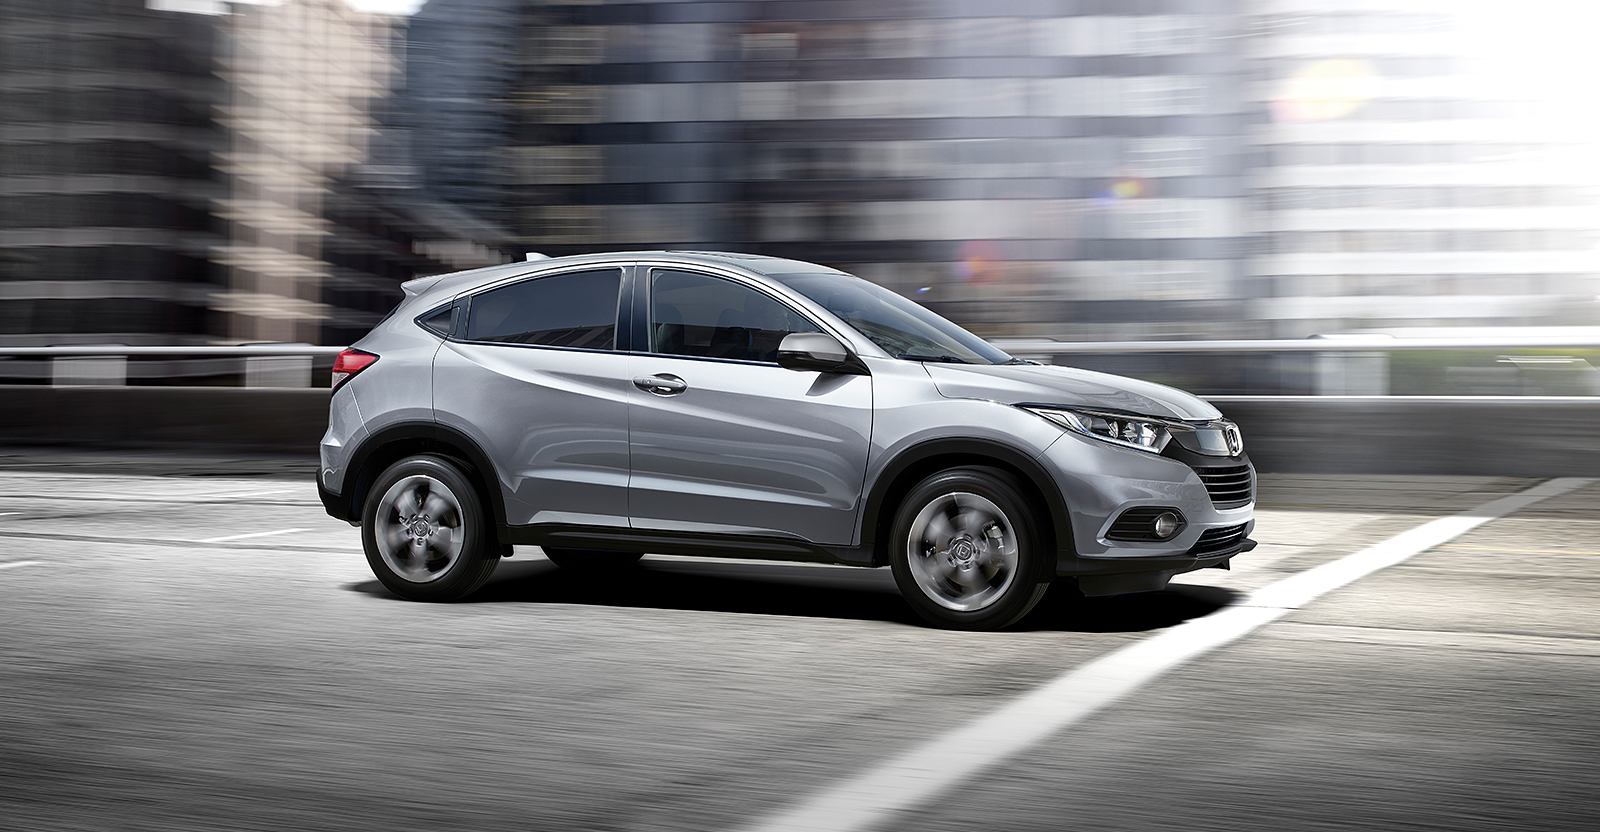 hr-v performance 01